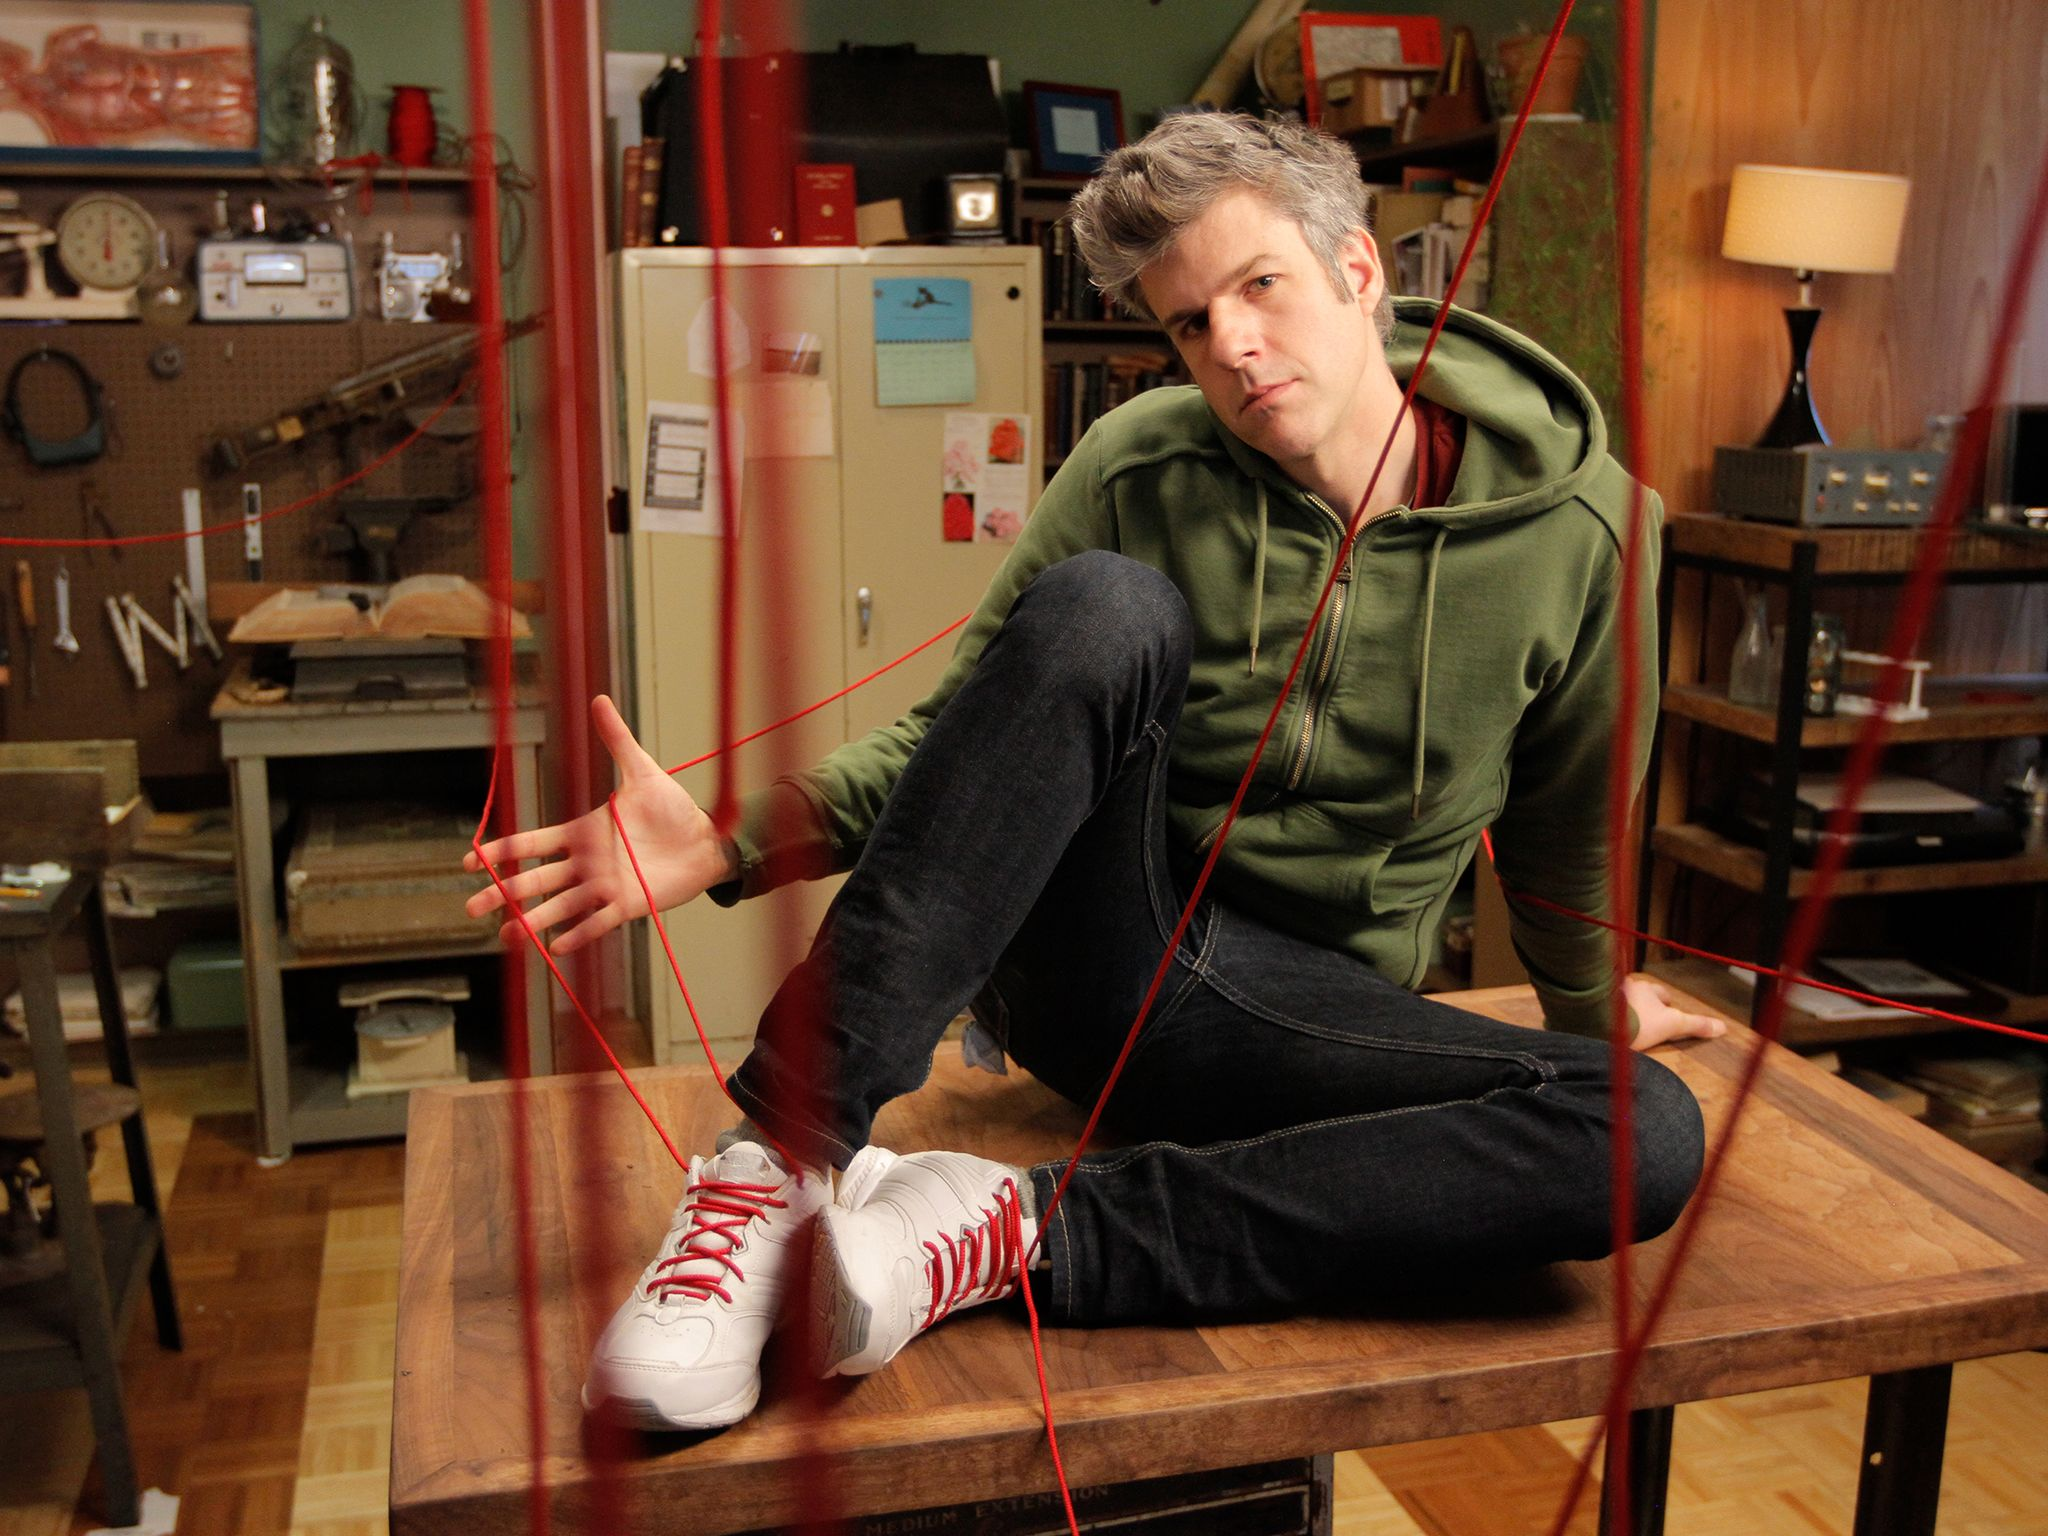 Beacon, NY: David Rees poses on top of his workbench with 50-foot laces strewn about his workshop... [Photo of the day - October, 2014]